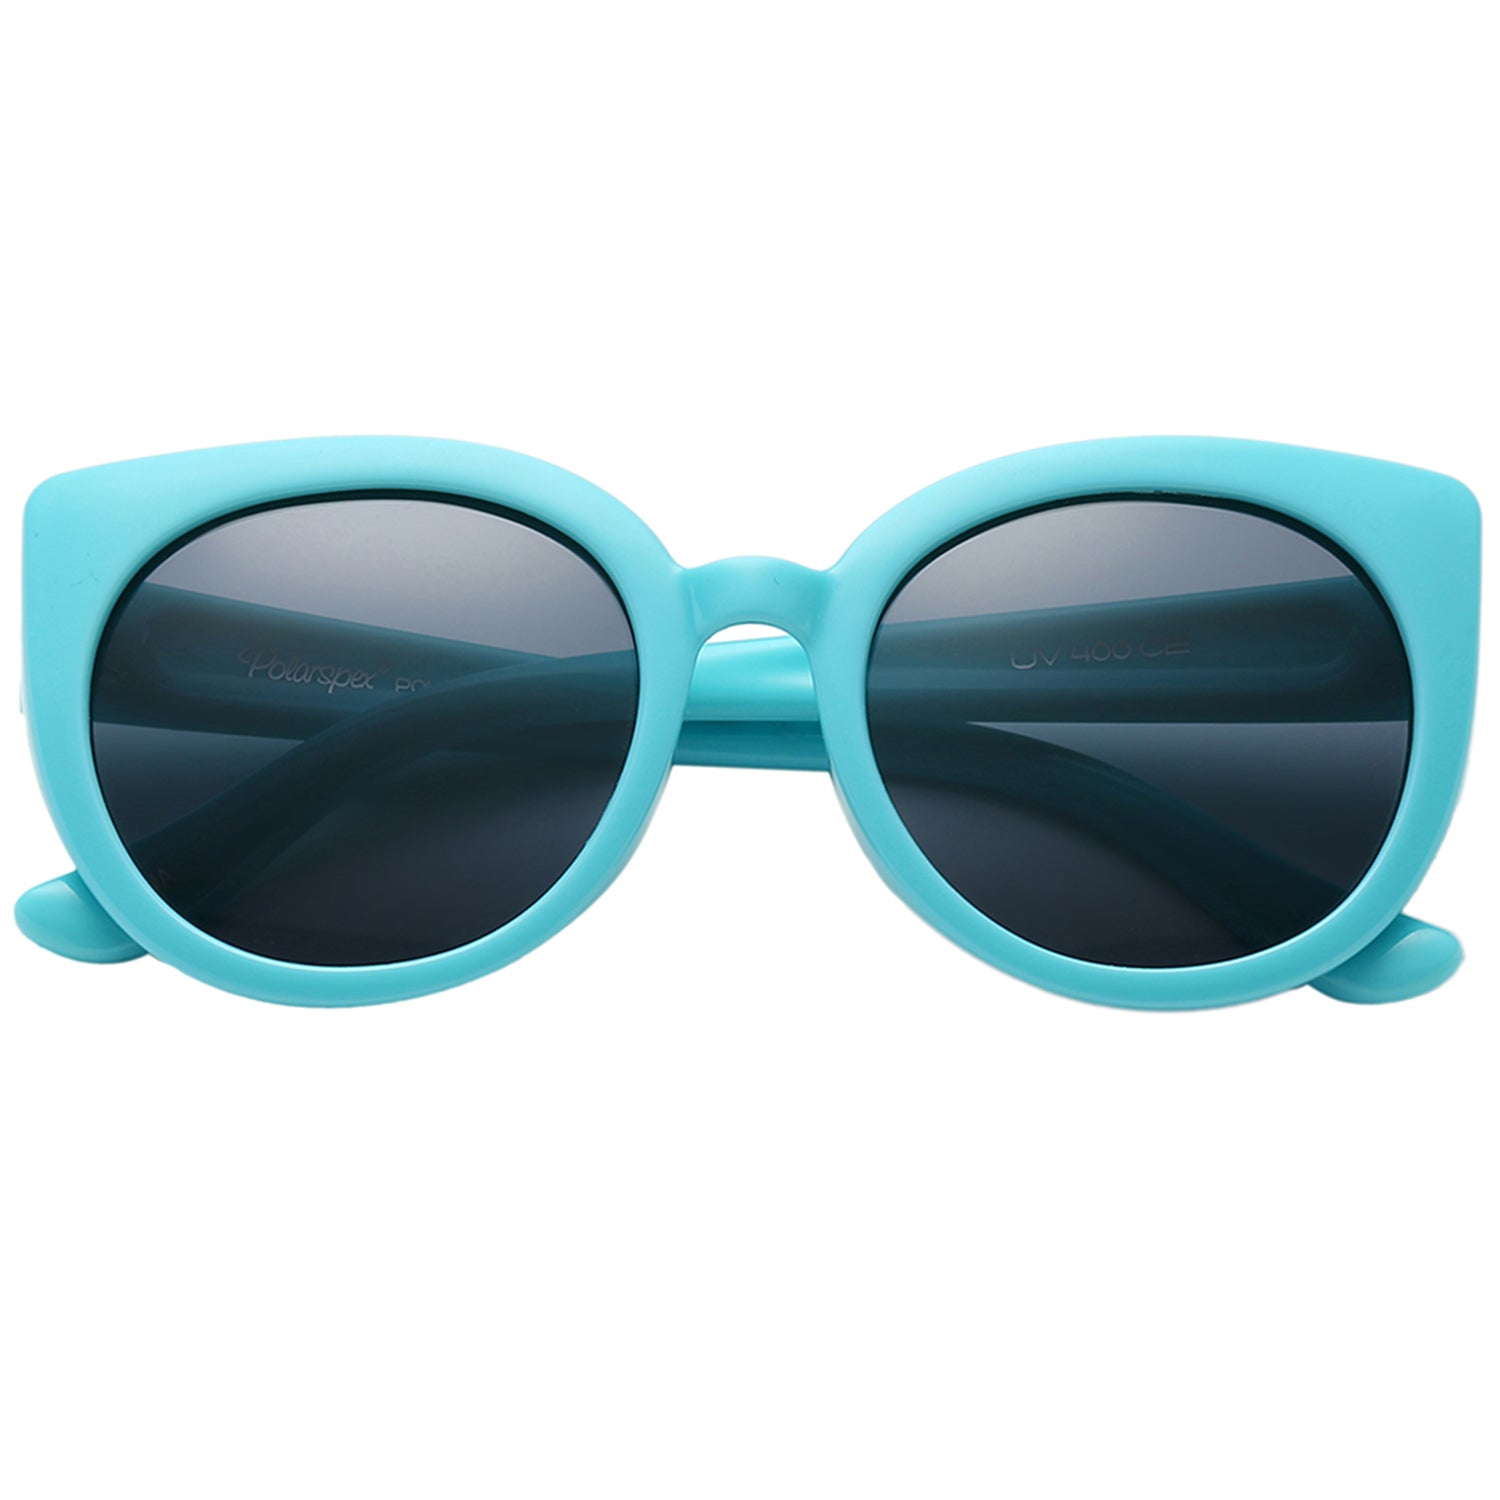 Polarspex Polarized Elastic Cateyes Style (BPA Free) Kids Sunglasses with Turqoise Teal Frames and Polarized Smoke Lenses for Girls (Ages 2 - 8)